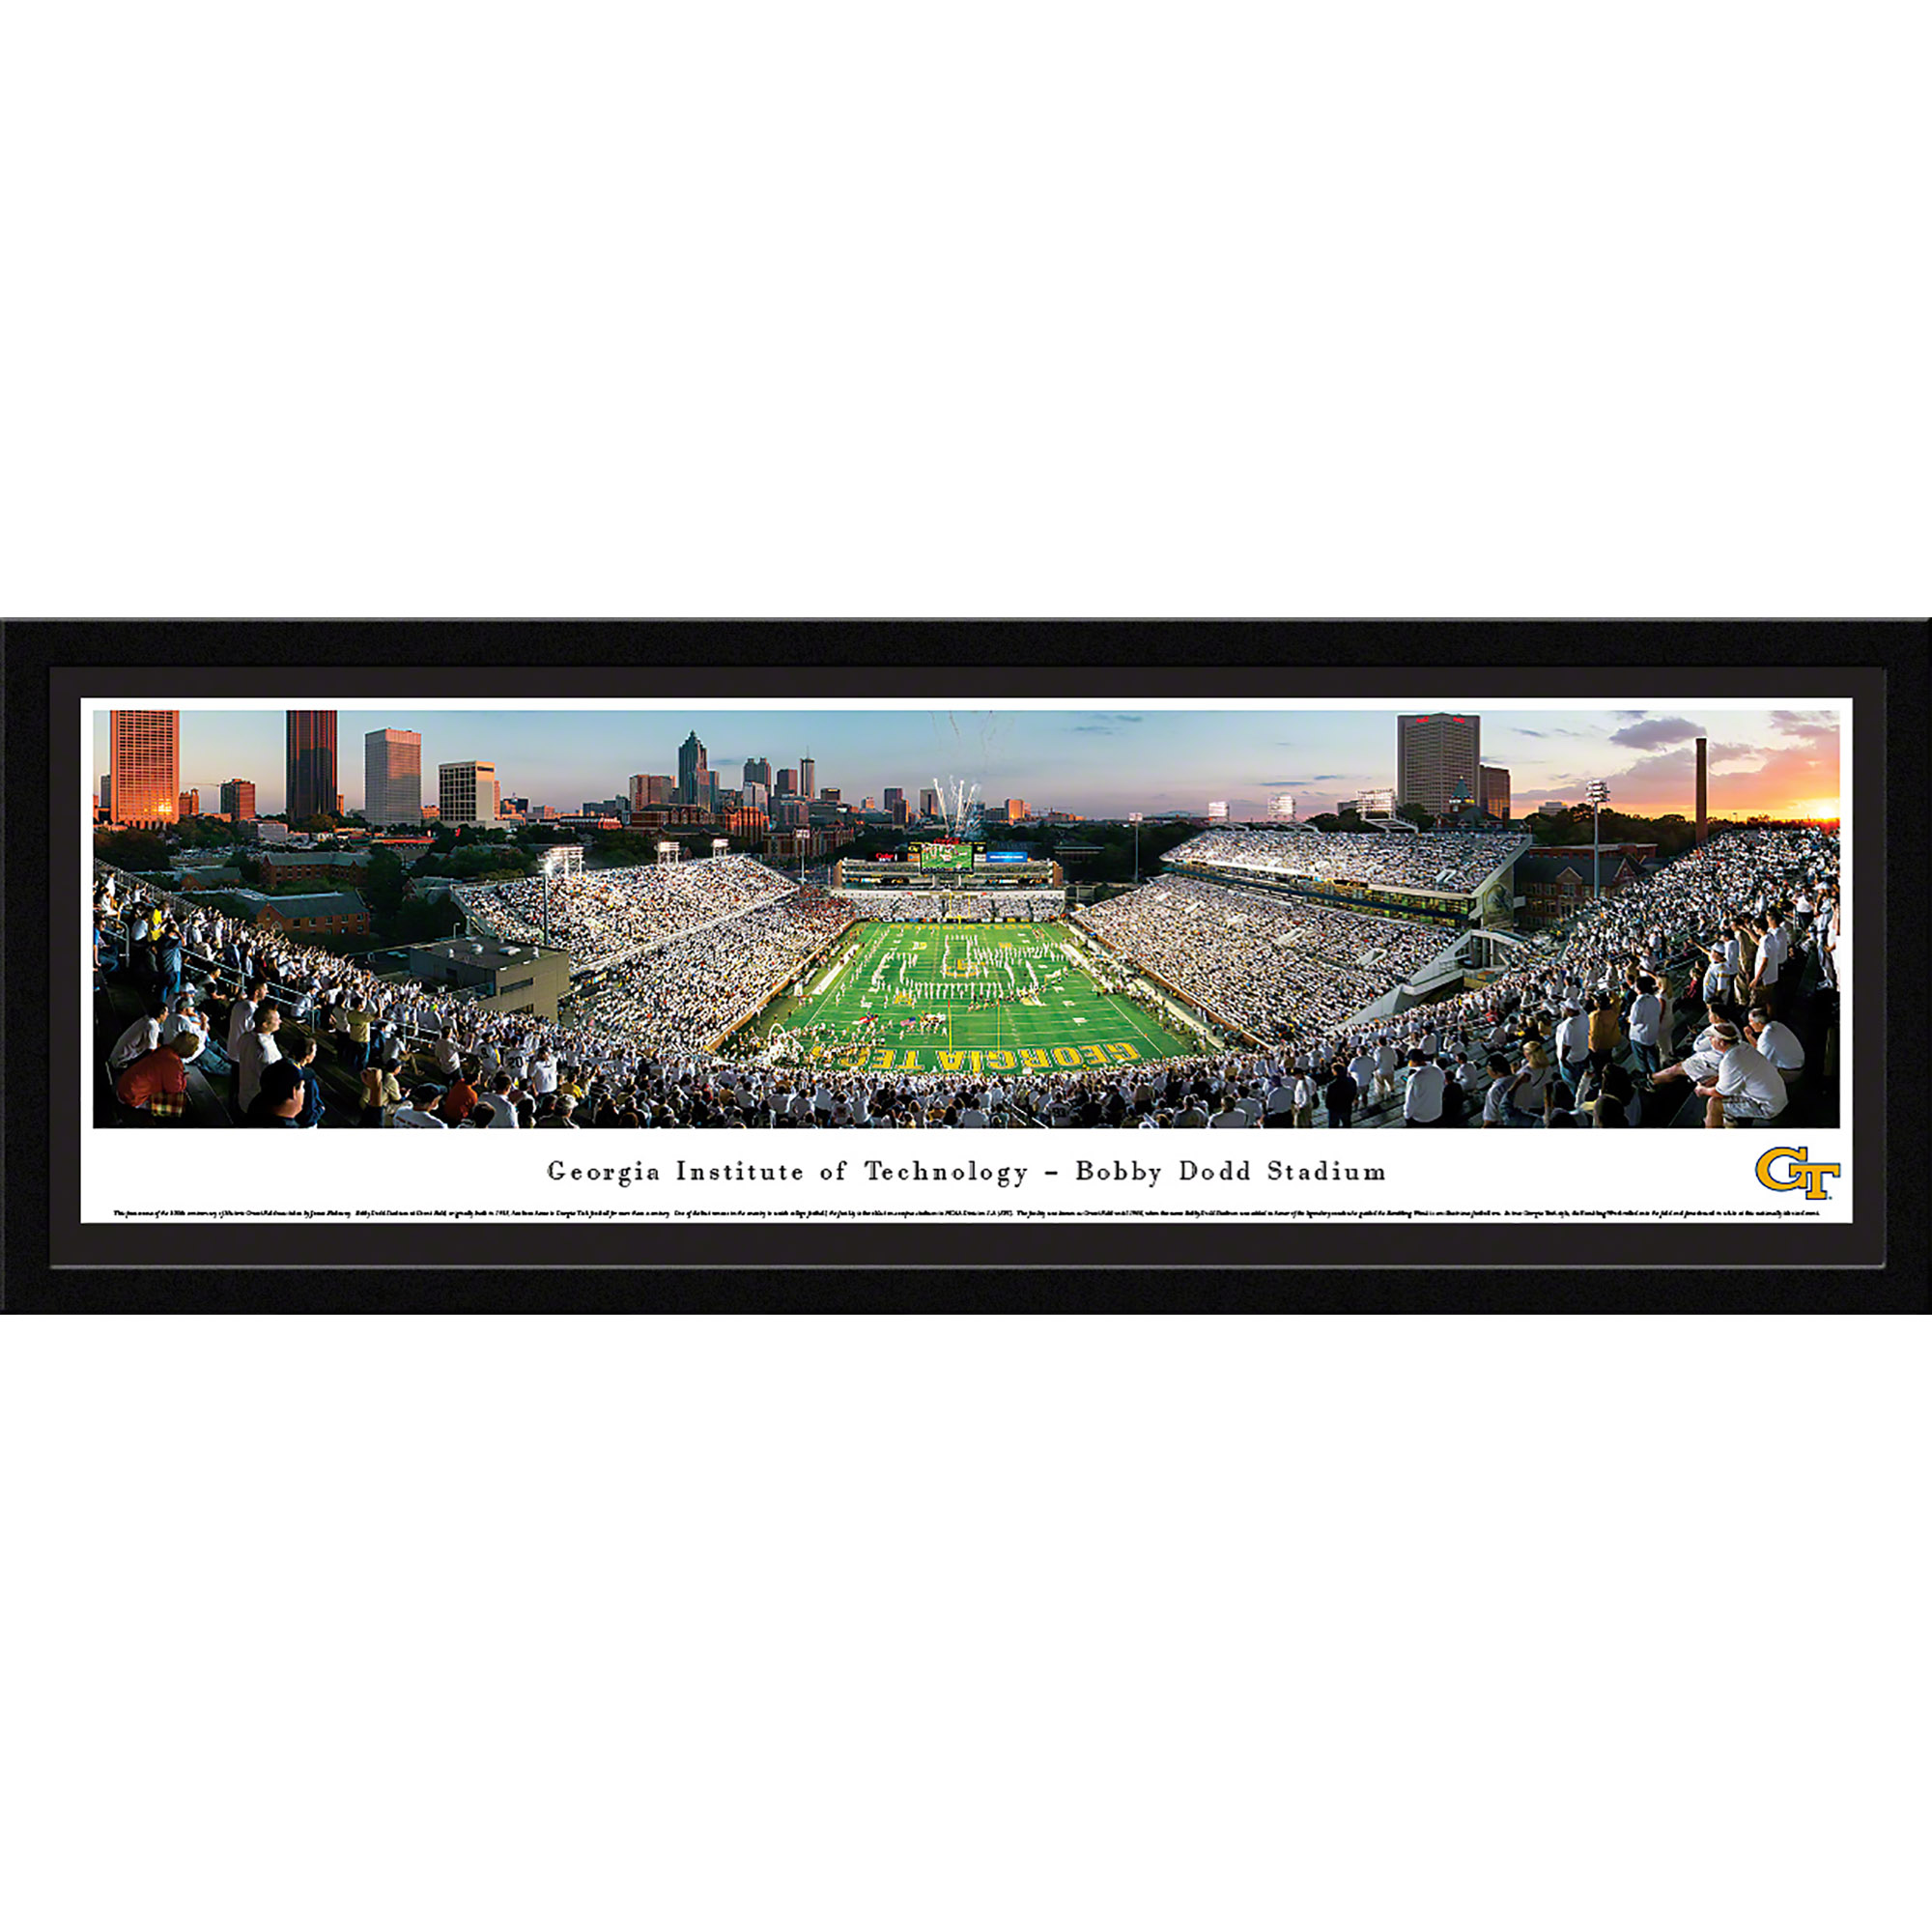 Georgia Tech Yellow Jackets Football - End Zone View in Bobby Dodd Stadium - Blakeway Panoramas NCAA College Print with Select Frame and Single Mat